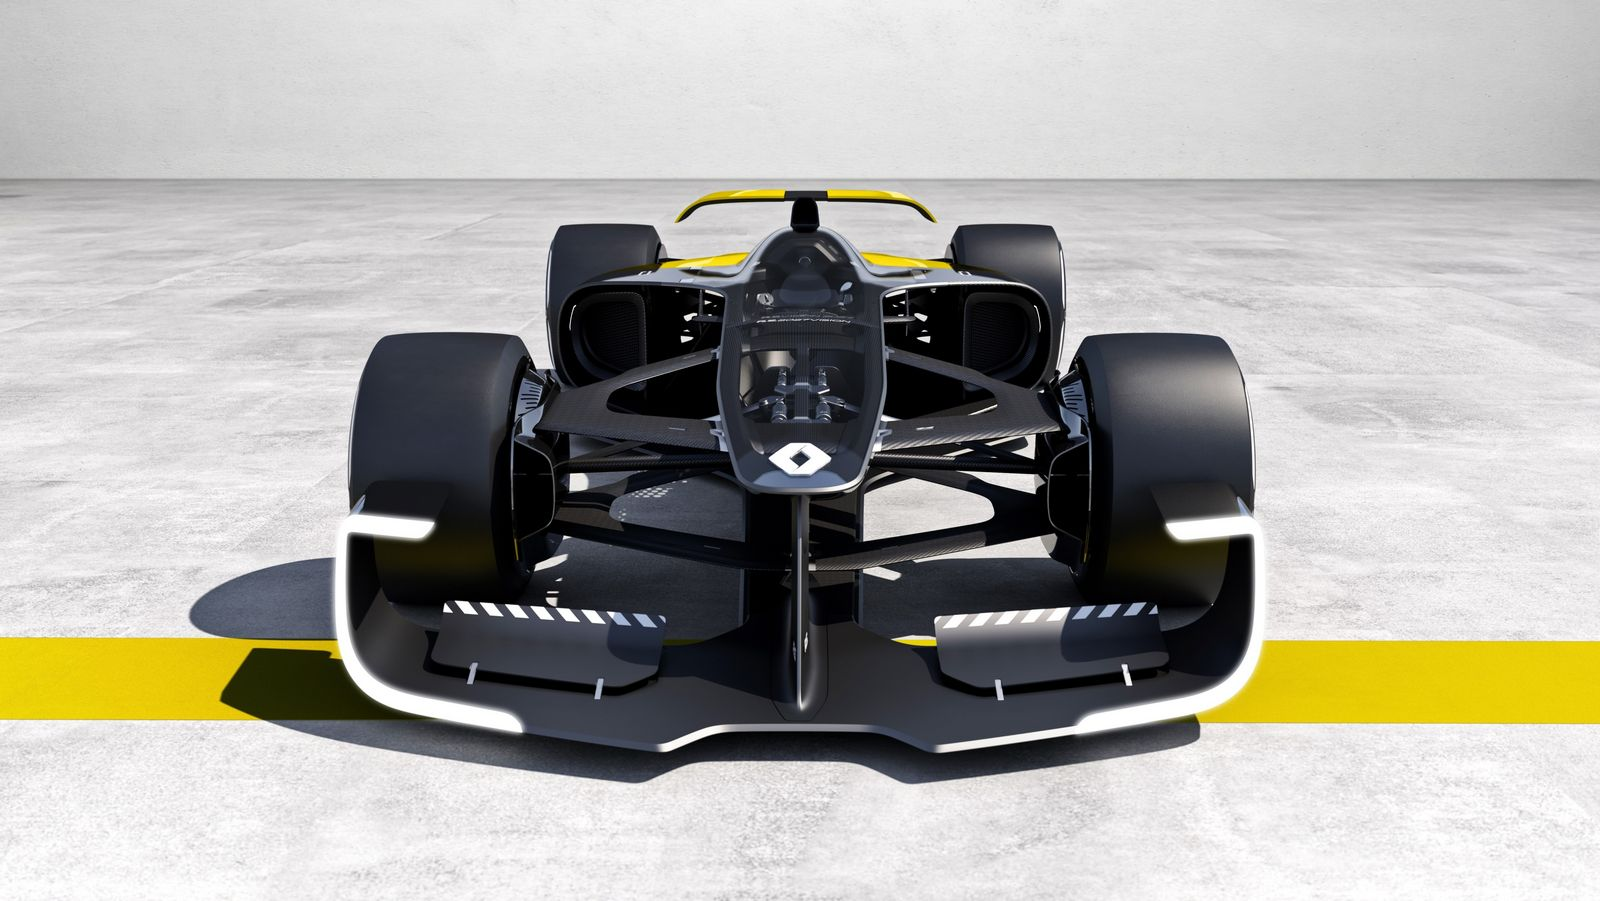 Renault RS 2027 Vision concept (21)